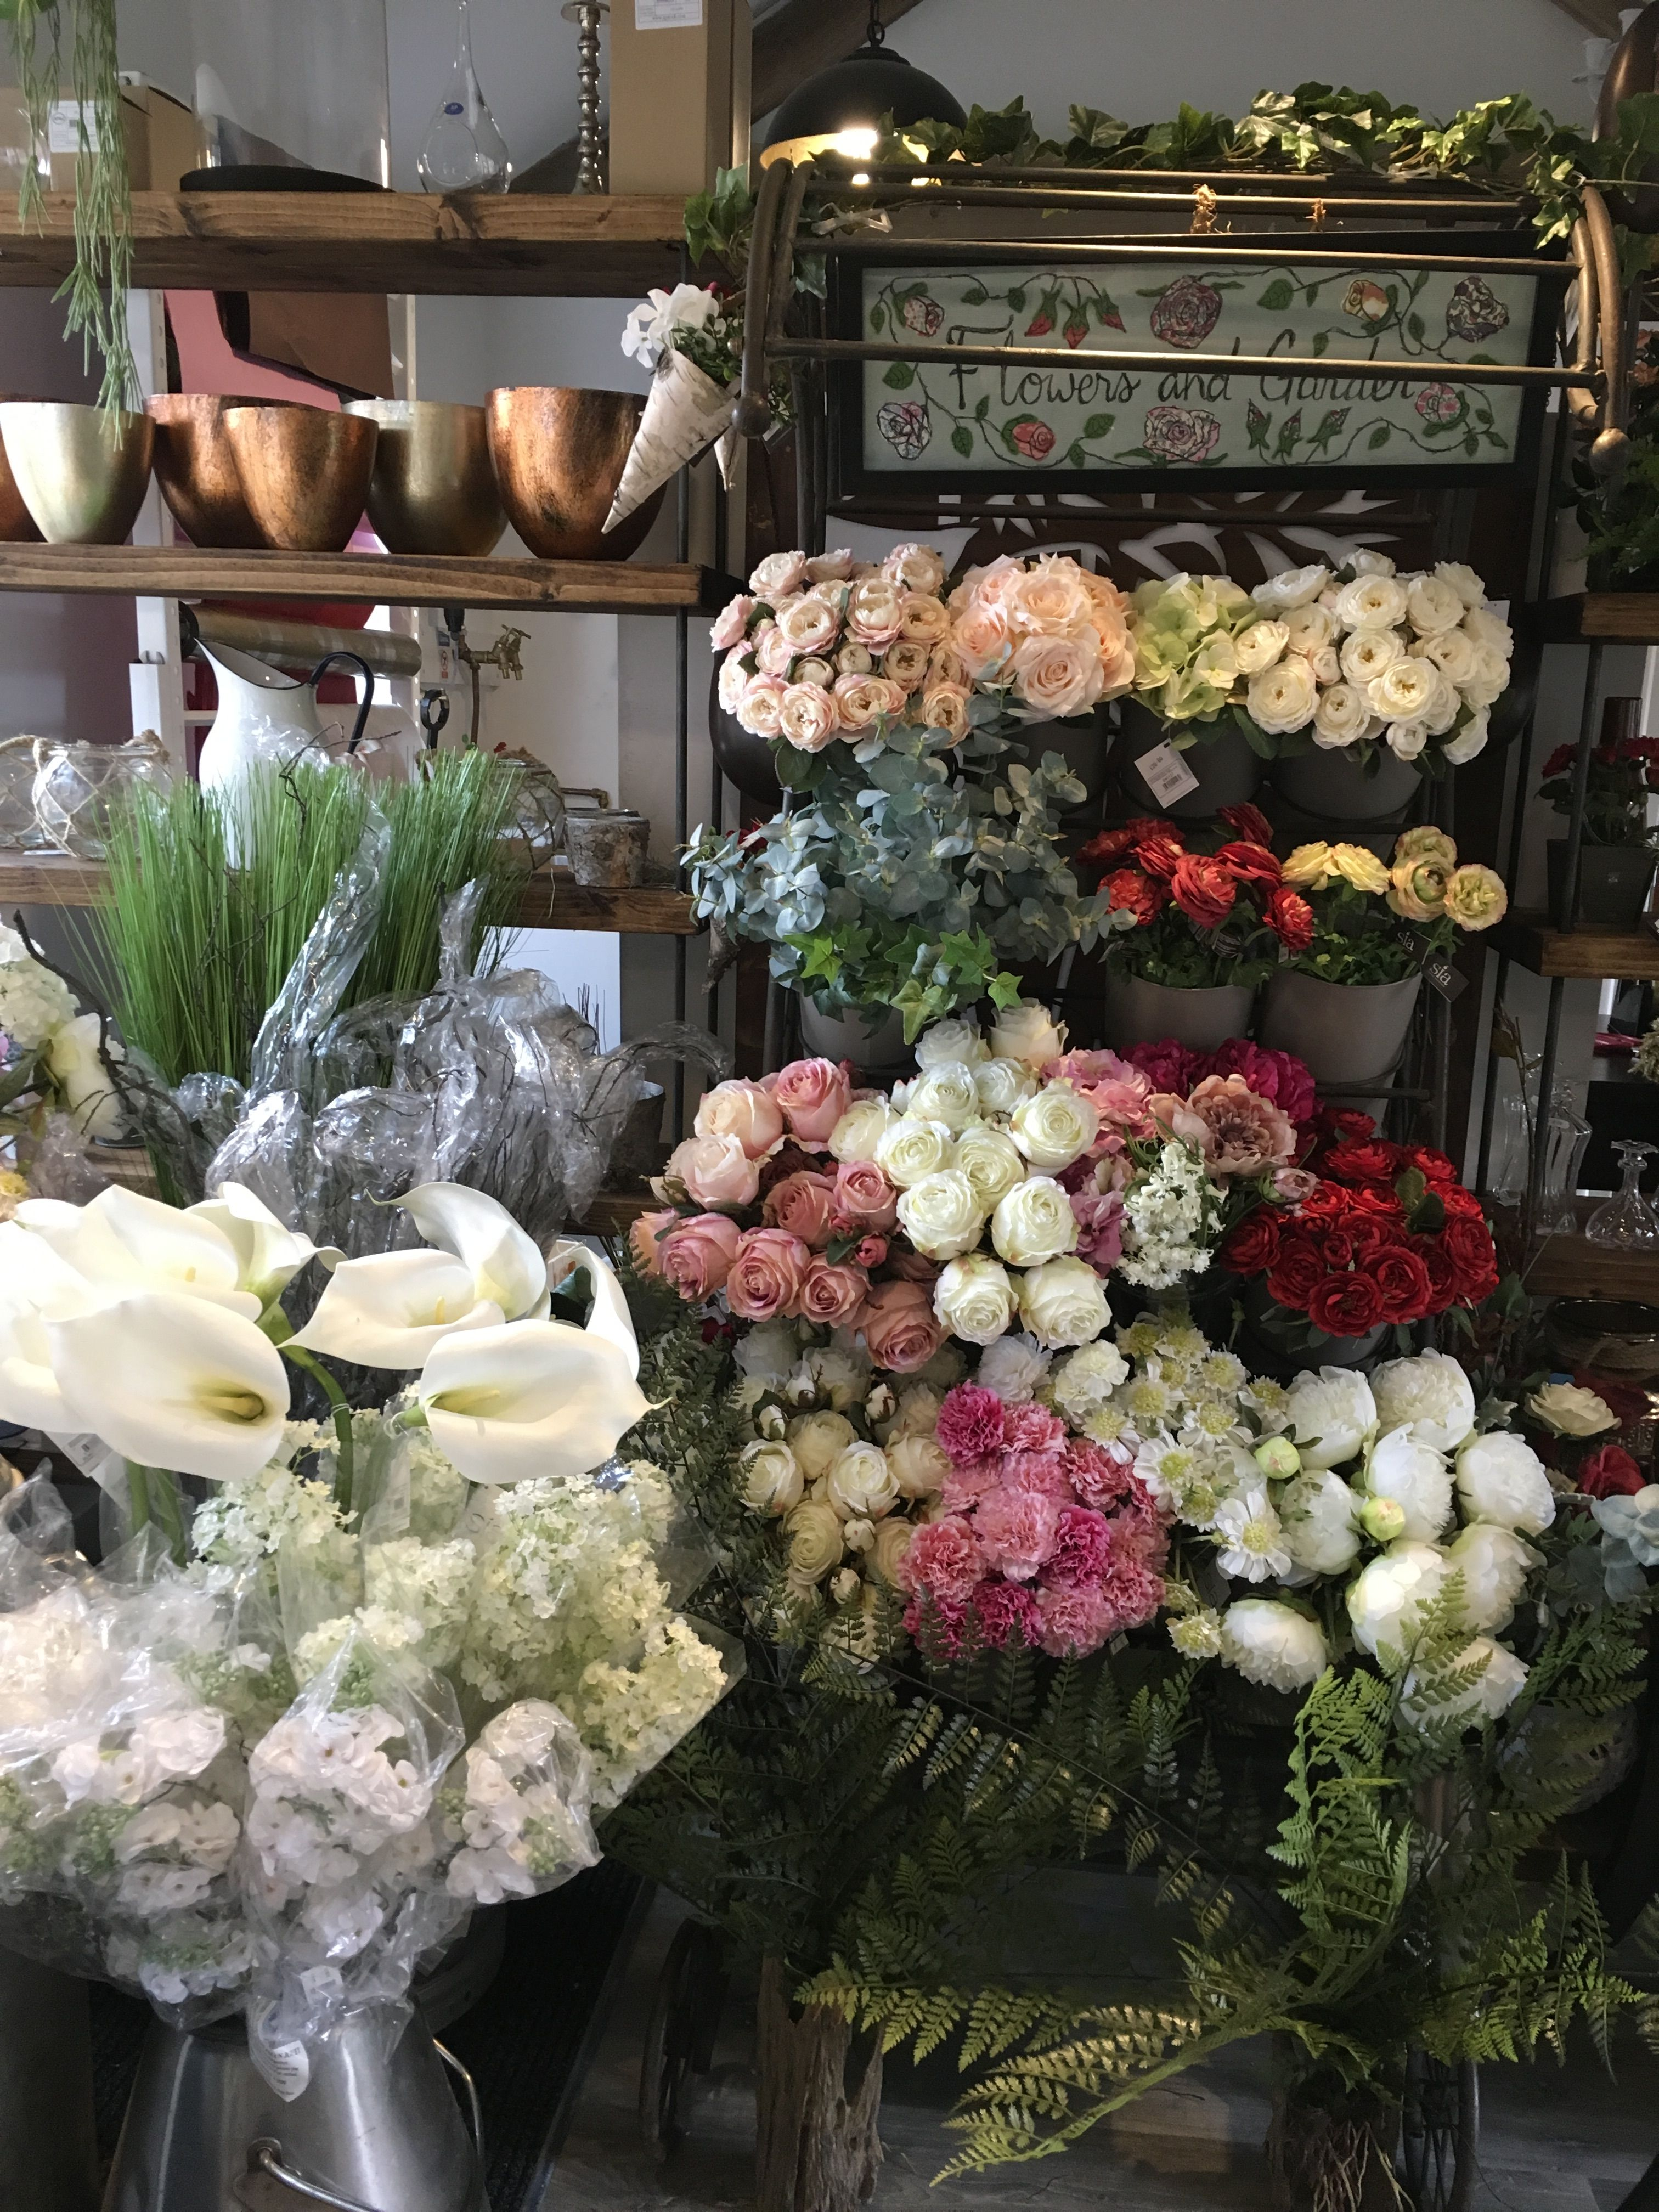 Sia Silk Flowers On Sale At Ambers Rose Florist Sprowston Norwich